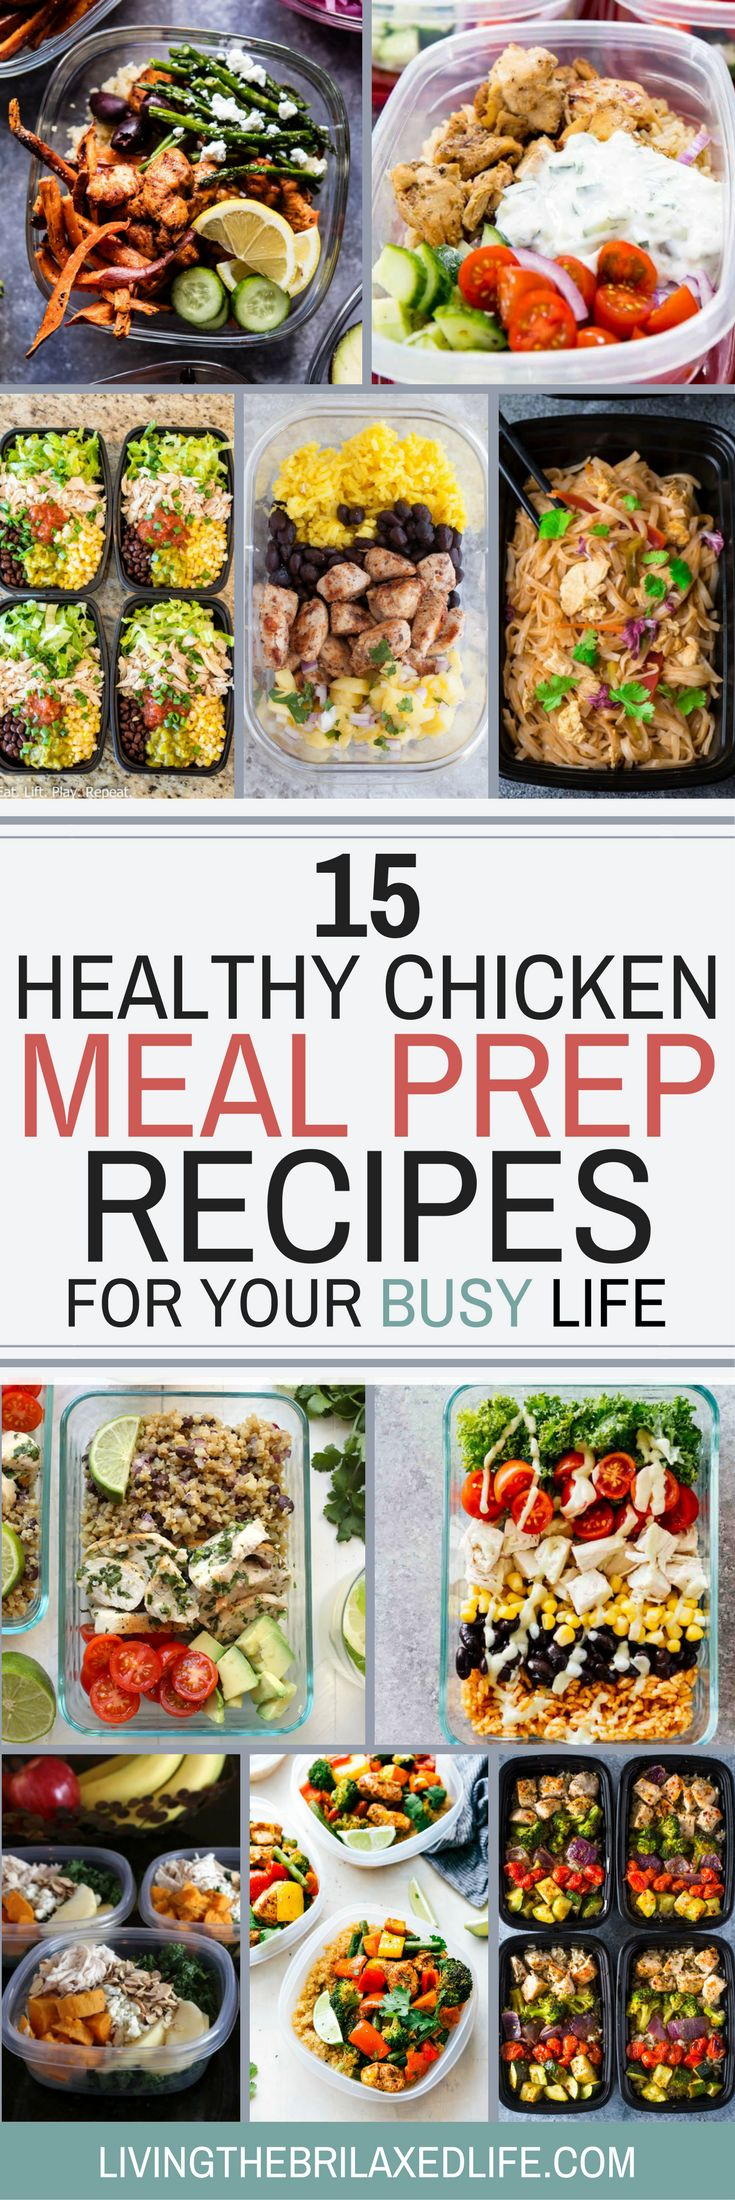 Finding time to make lunch and dinner got you stressed out? Meal prepping will solve all your problems! Here are 15 of my favorite chicken meal prep recipes to help you survive the busy week. My favorite is #10. #mealprep #timemanagement via @livingthebrilaxedlife